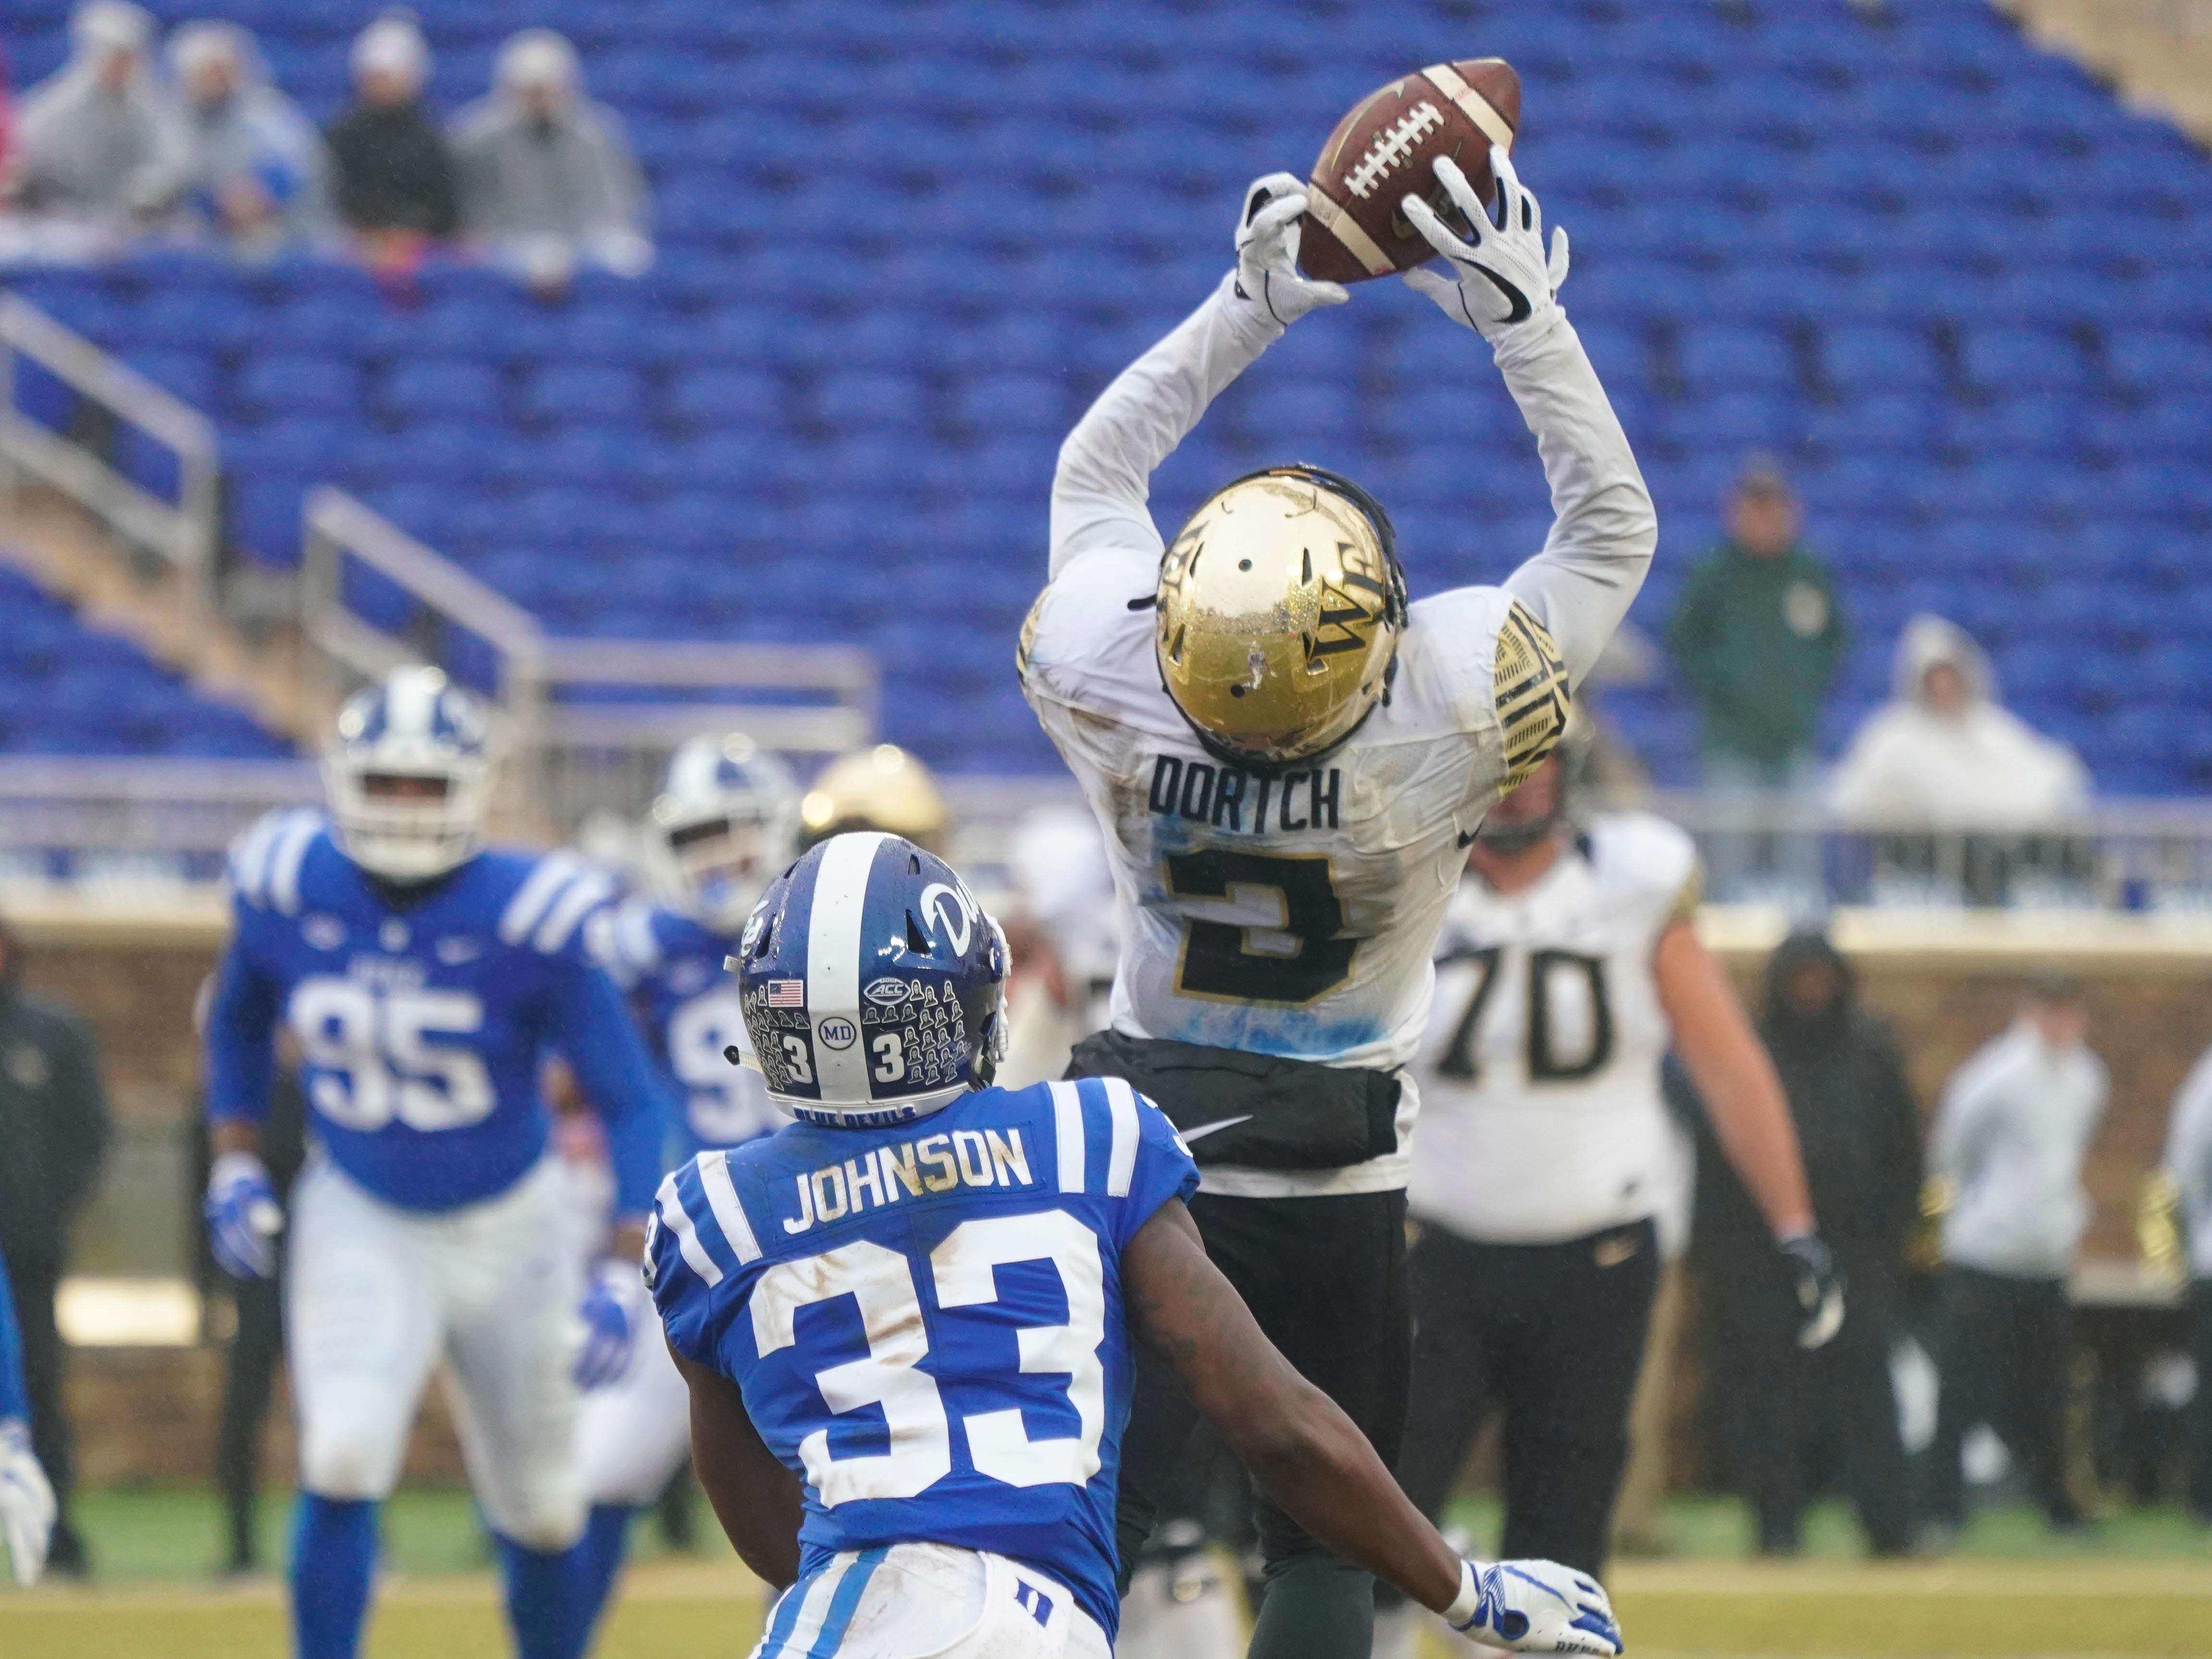 Wake Forest Demon Deacons wide receiver Greg Dortch (3) makes a first-half catch against Duke Blue Devils safety Leonard Johnson (33) at Wallace Wade Stadium.